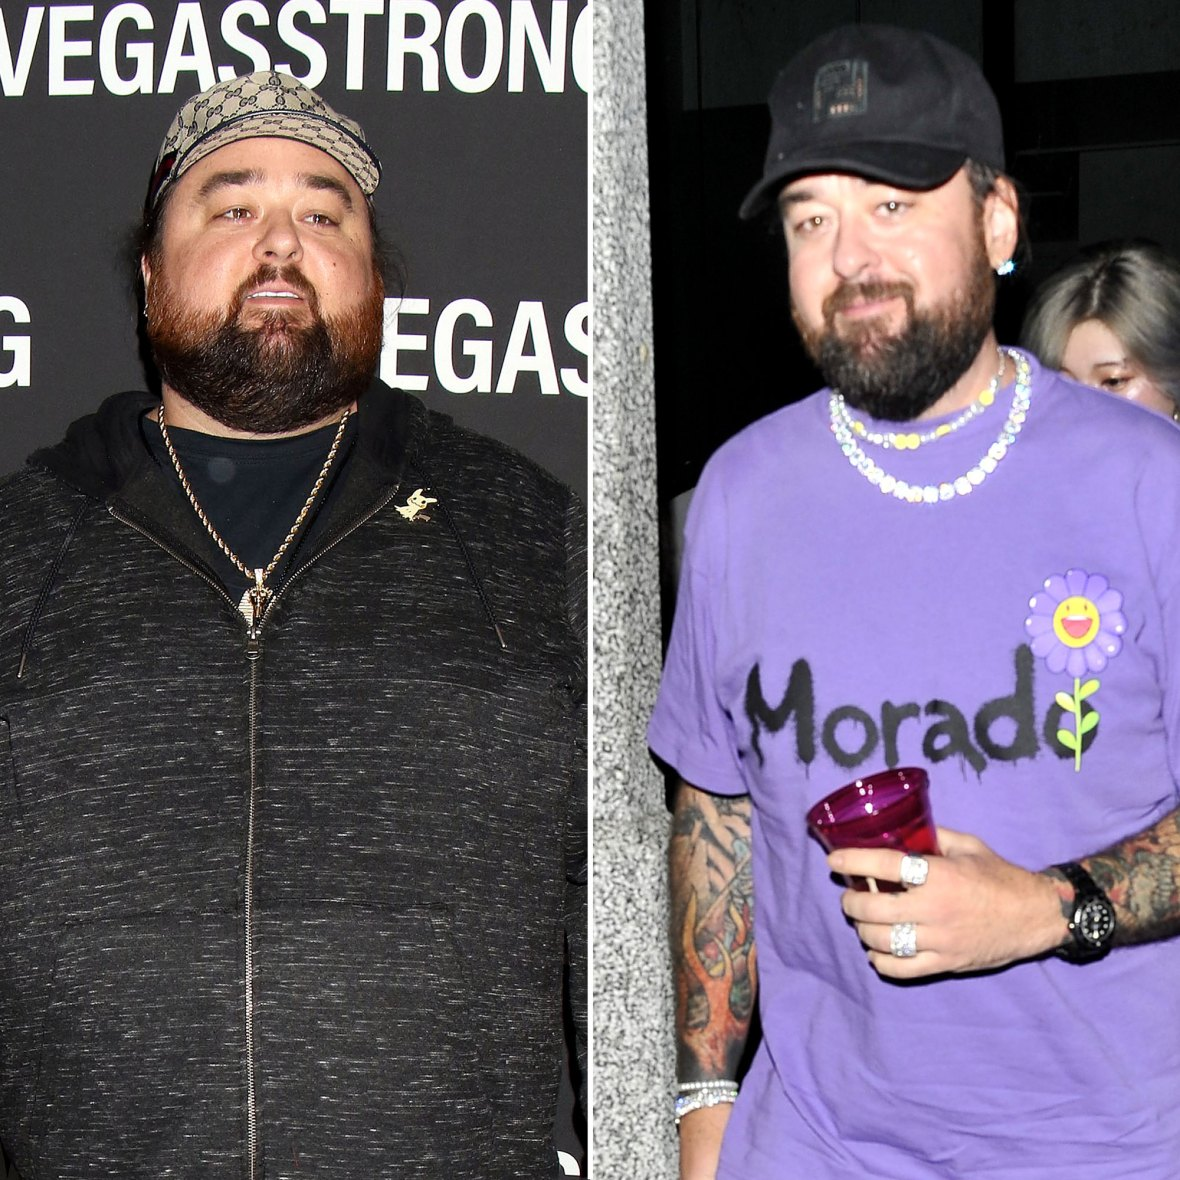 Pawn Stars Chumlee Reveals 160-Pound Weight Loss After Gastric Surgery